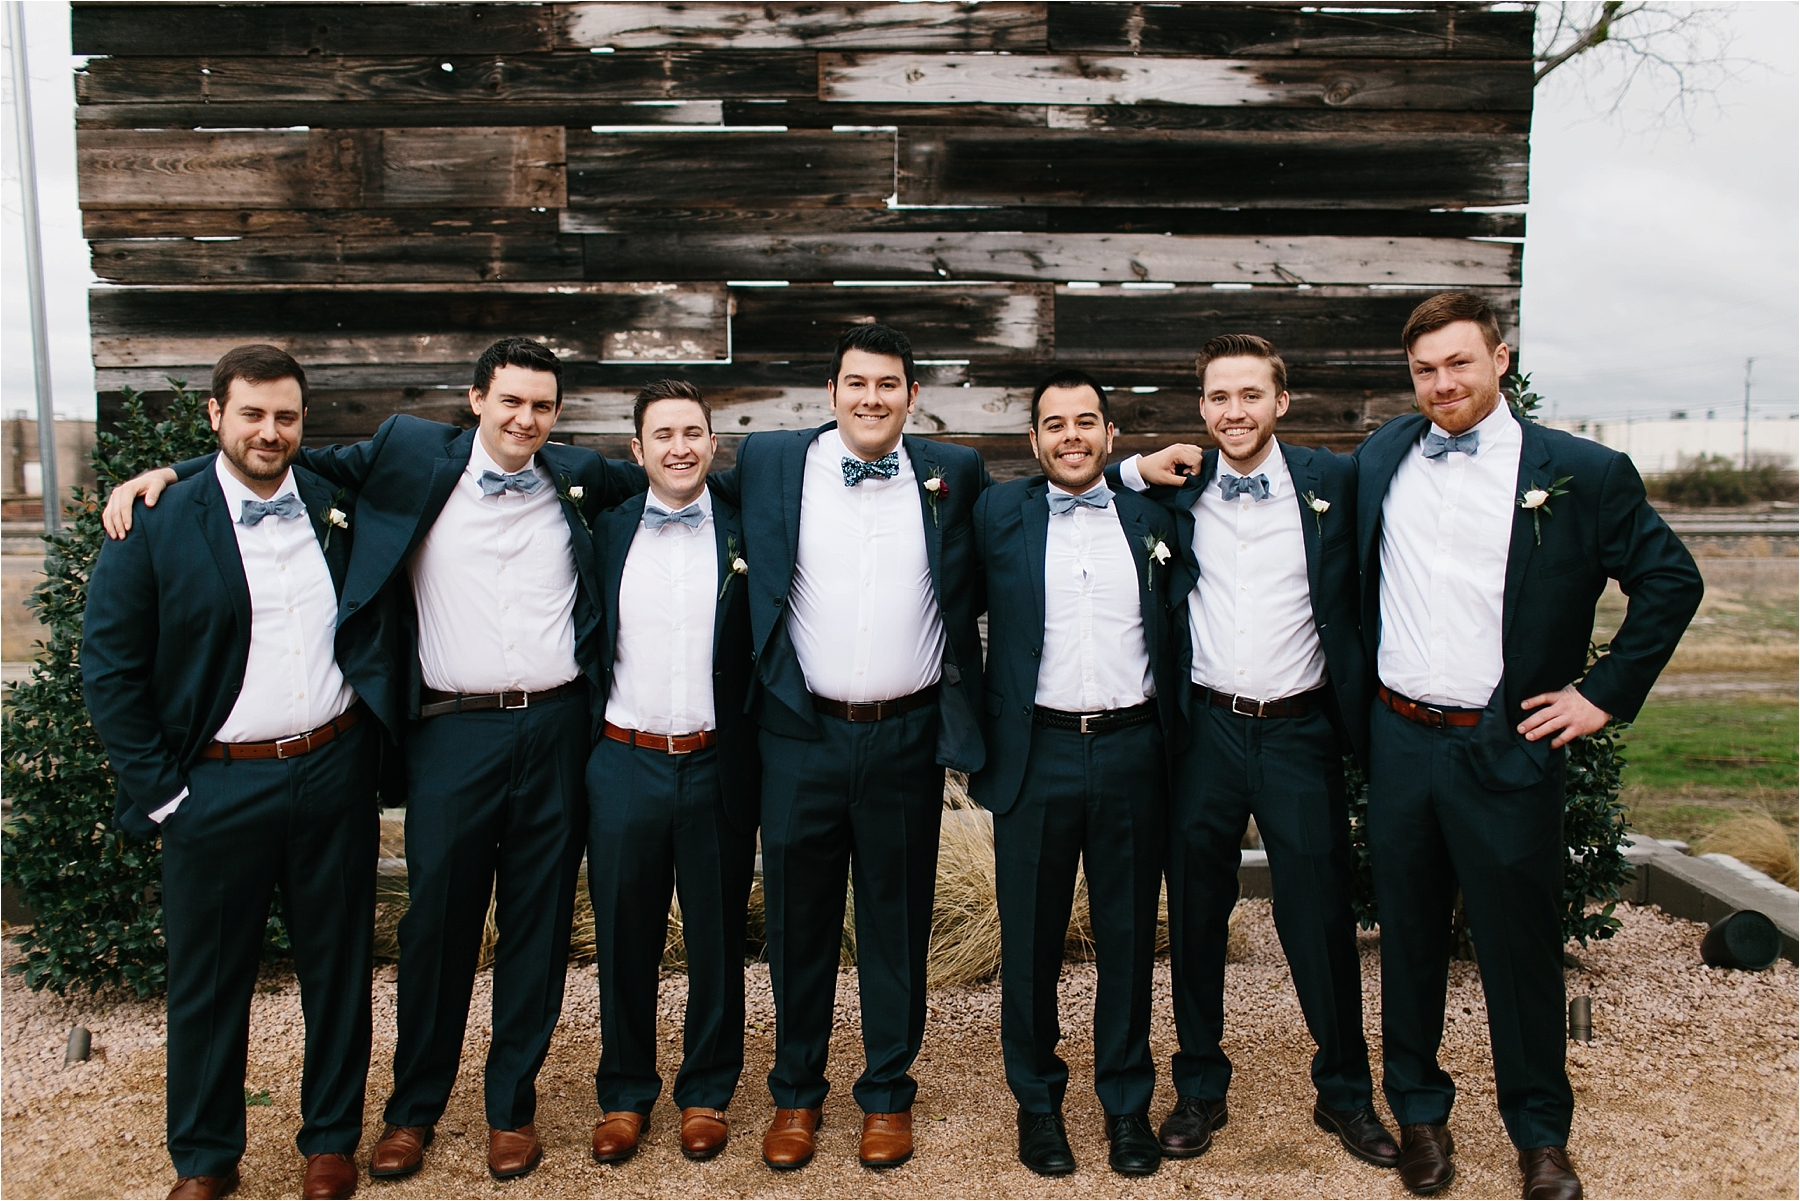 an organic, romantic, whimsical wedding at Brik Venue with Blue Grey, Burgandy, and pops of navy gold + white accents by North Texas Wedding Photographer Rachel Meagan Photography __ 233